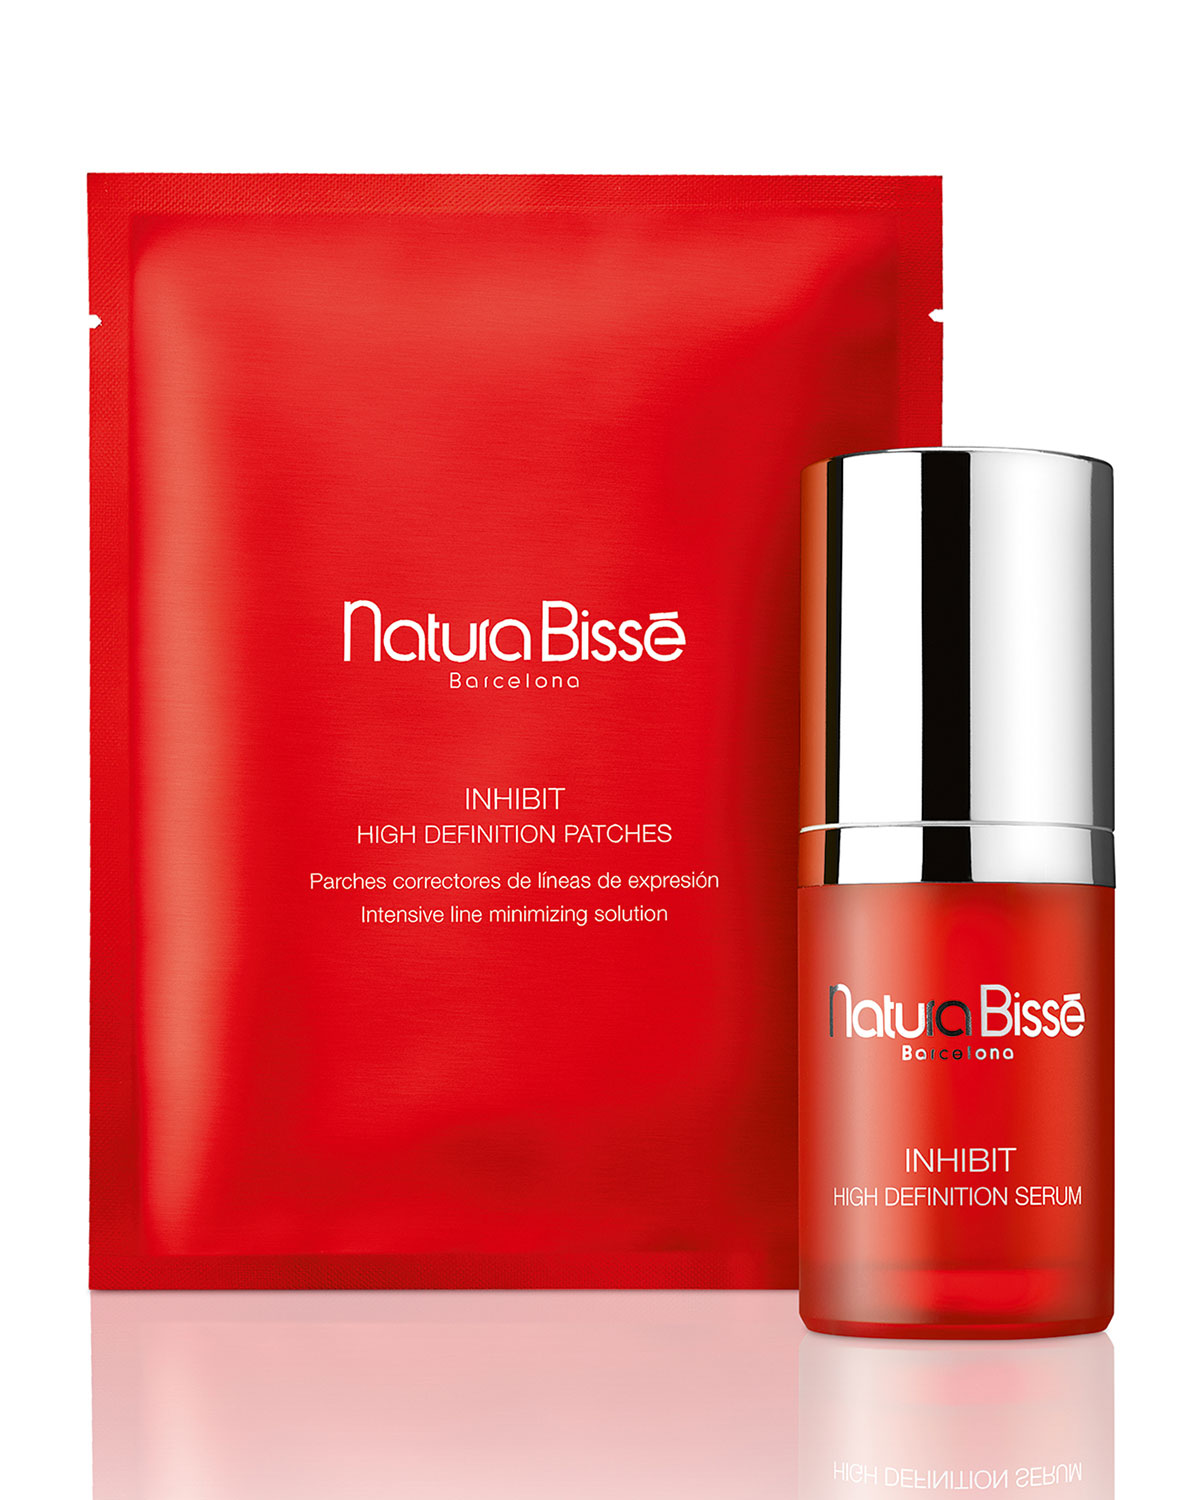 Natura Bissé Beauty Lover's Dream Limited Edition ($105 Value)